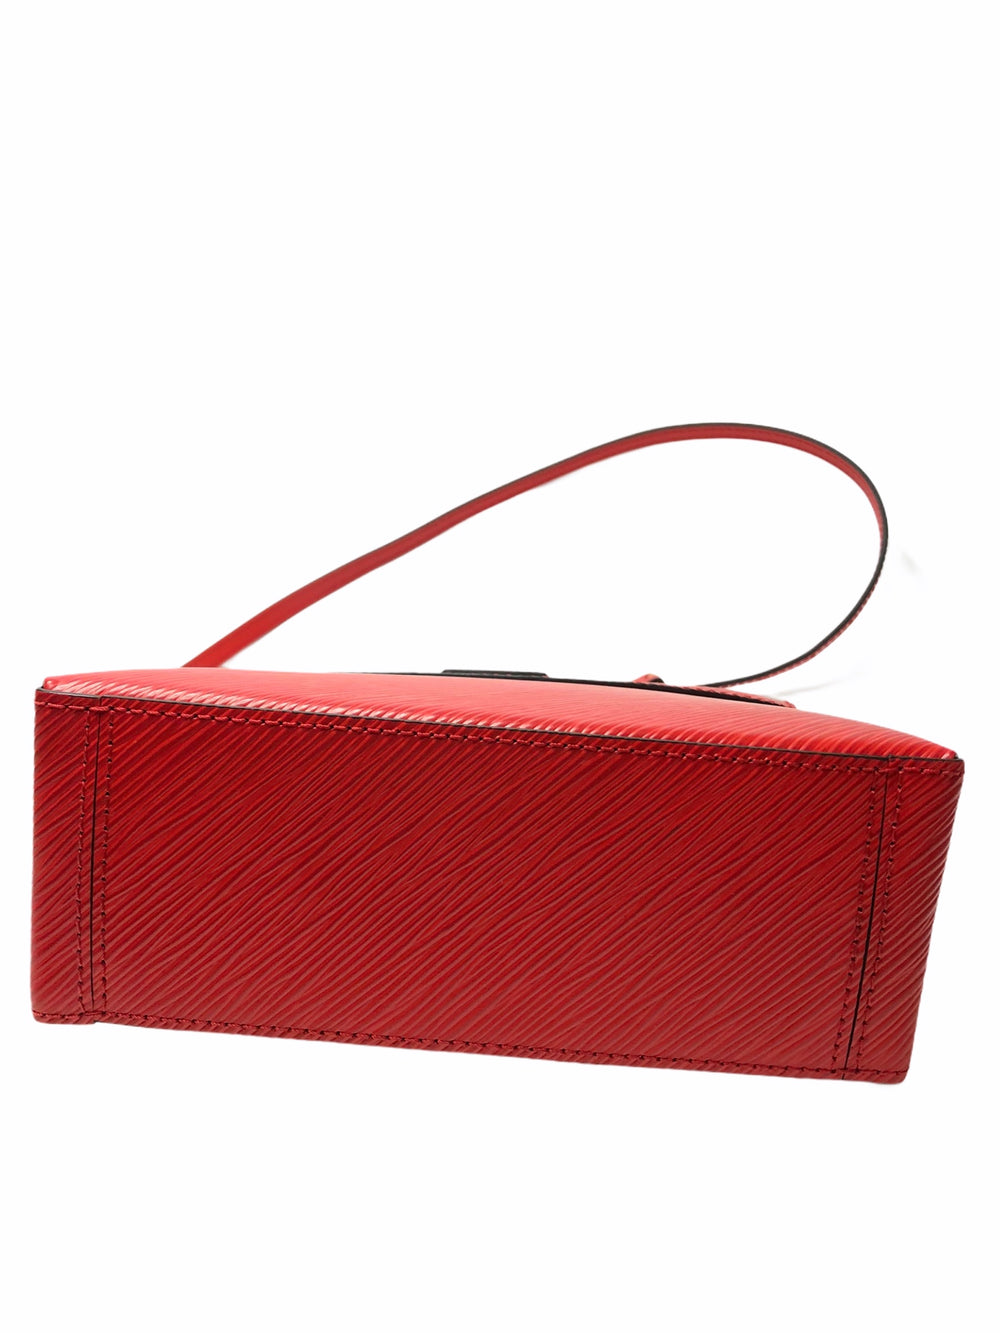 Louis Vuitton Red Epi Leather